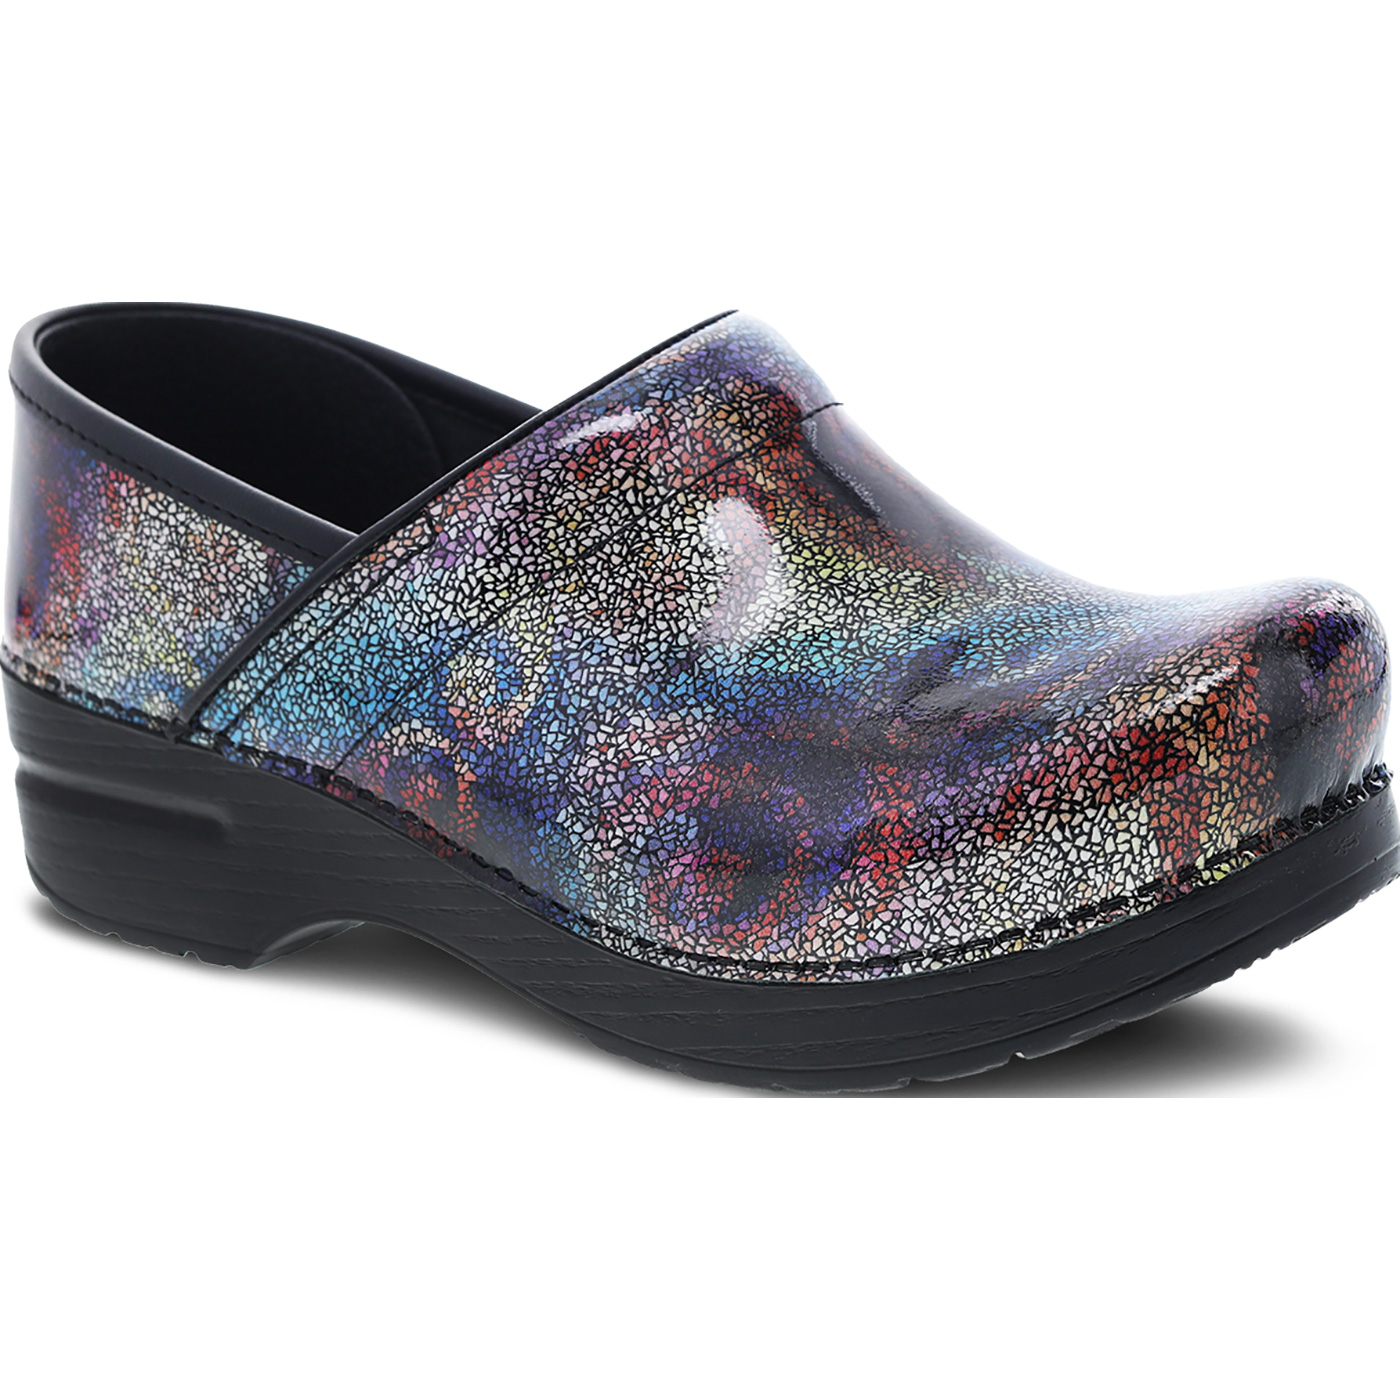 36f92555 Buy the Dansko Professional Women's Multi Mosaic Patent Leather Clog ...